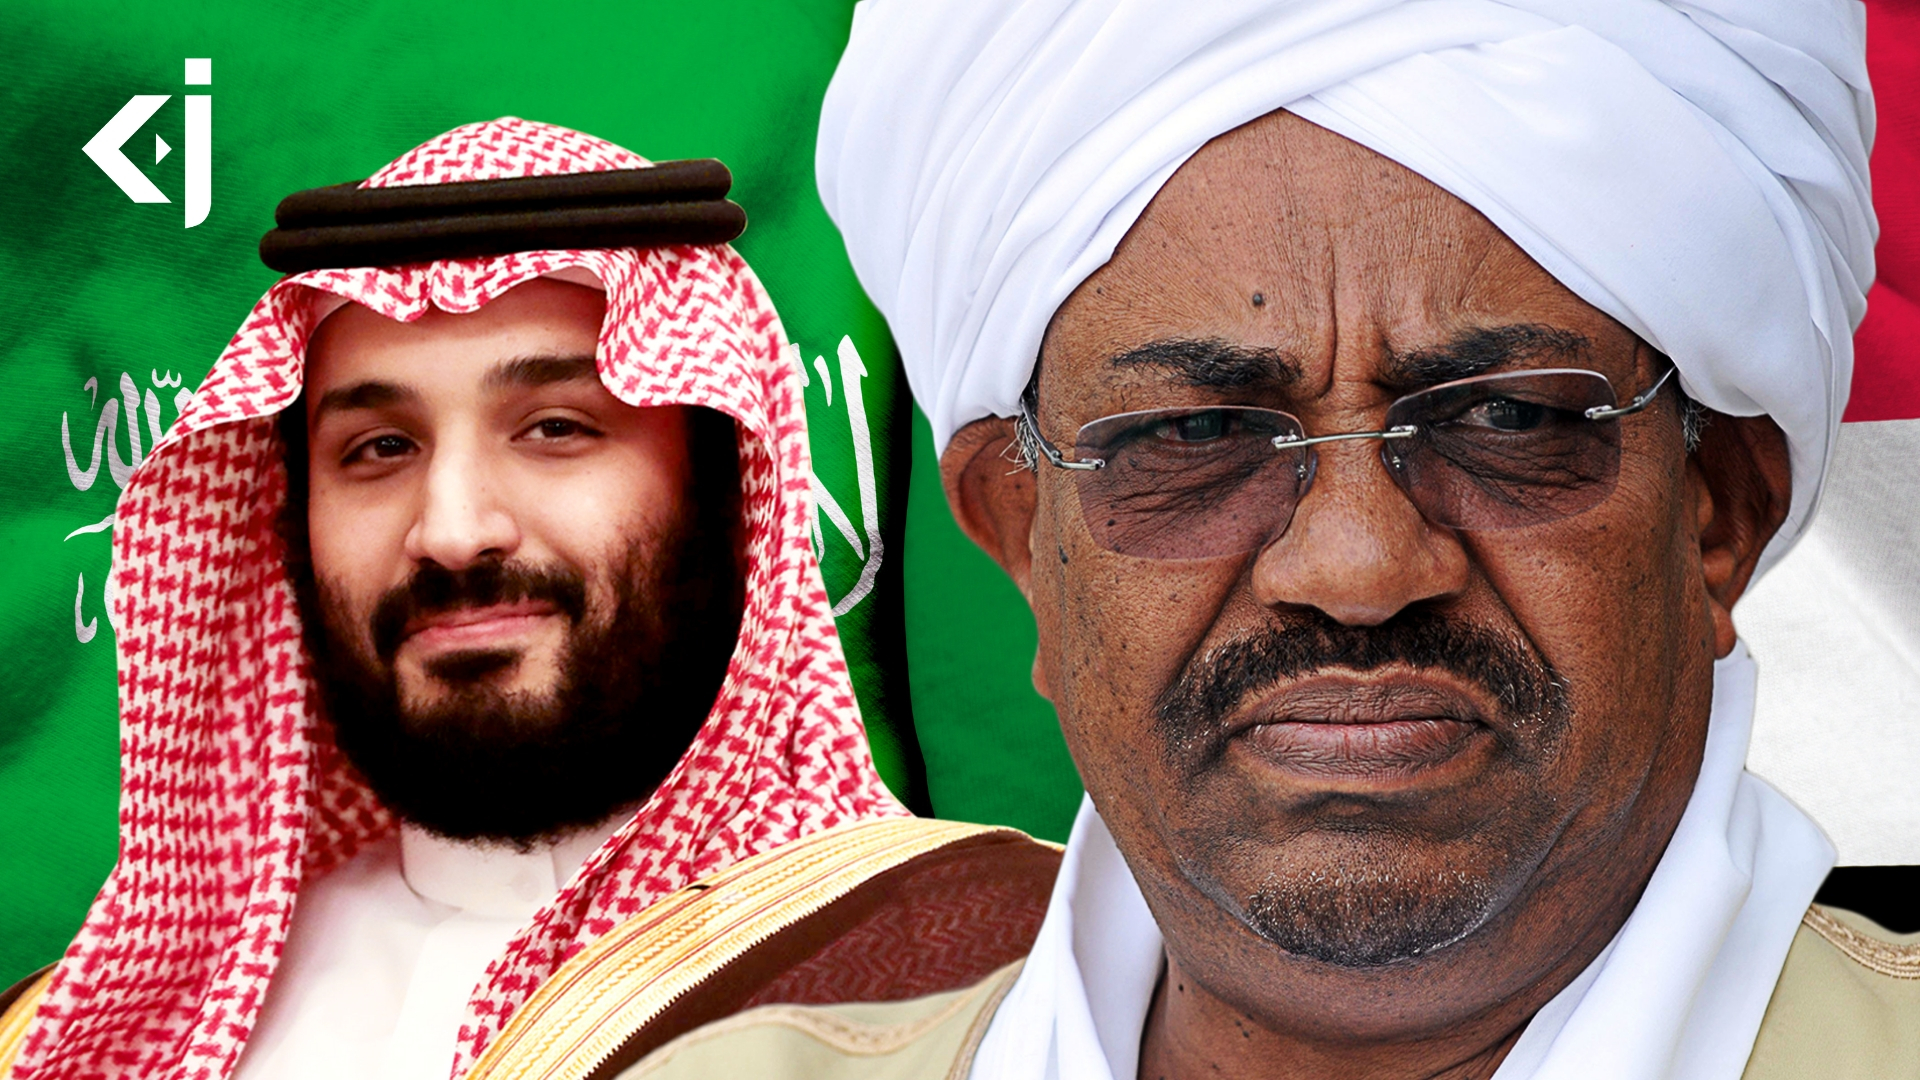 Saudi Arabia's discreet fight for influence in Sudan: 5 Geopolitical Effects You Need to Know